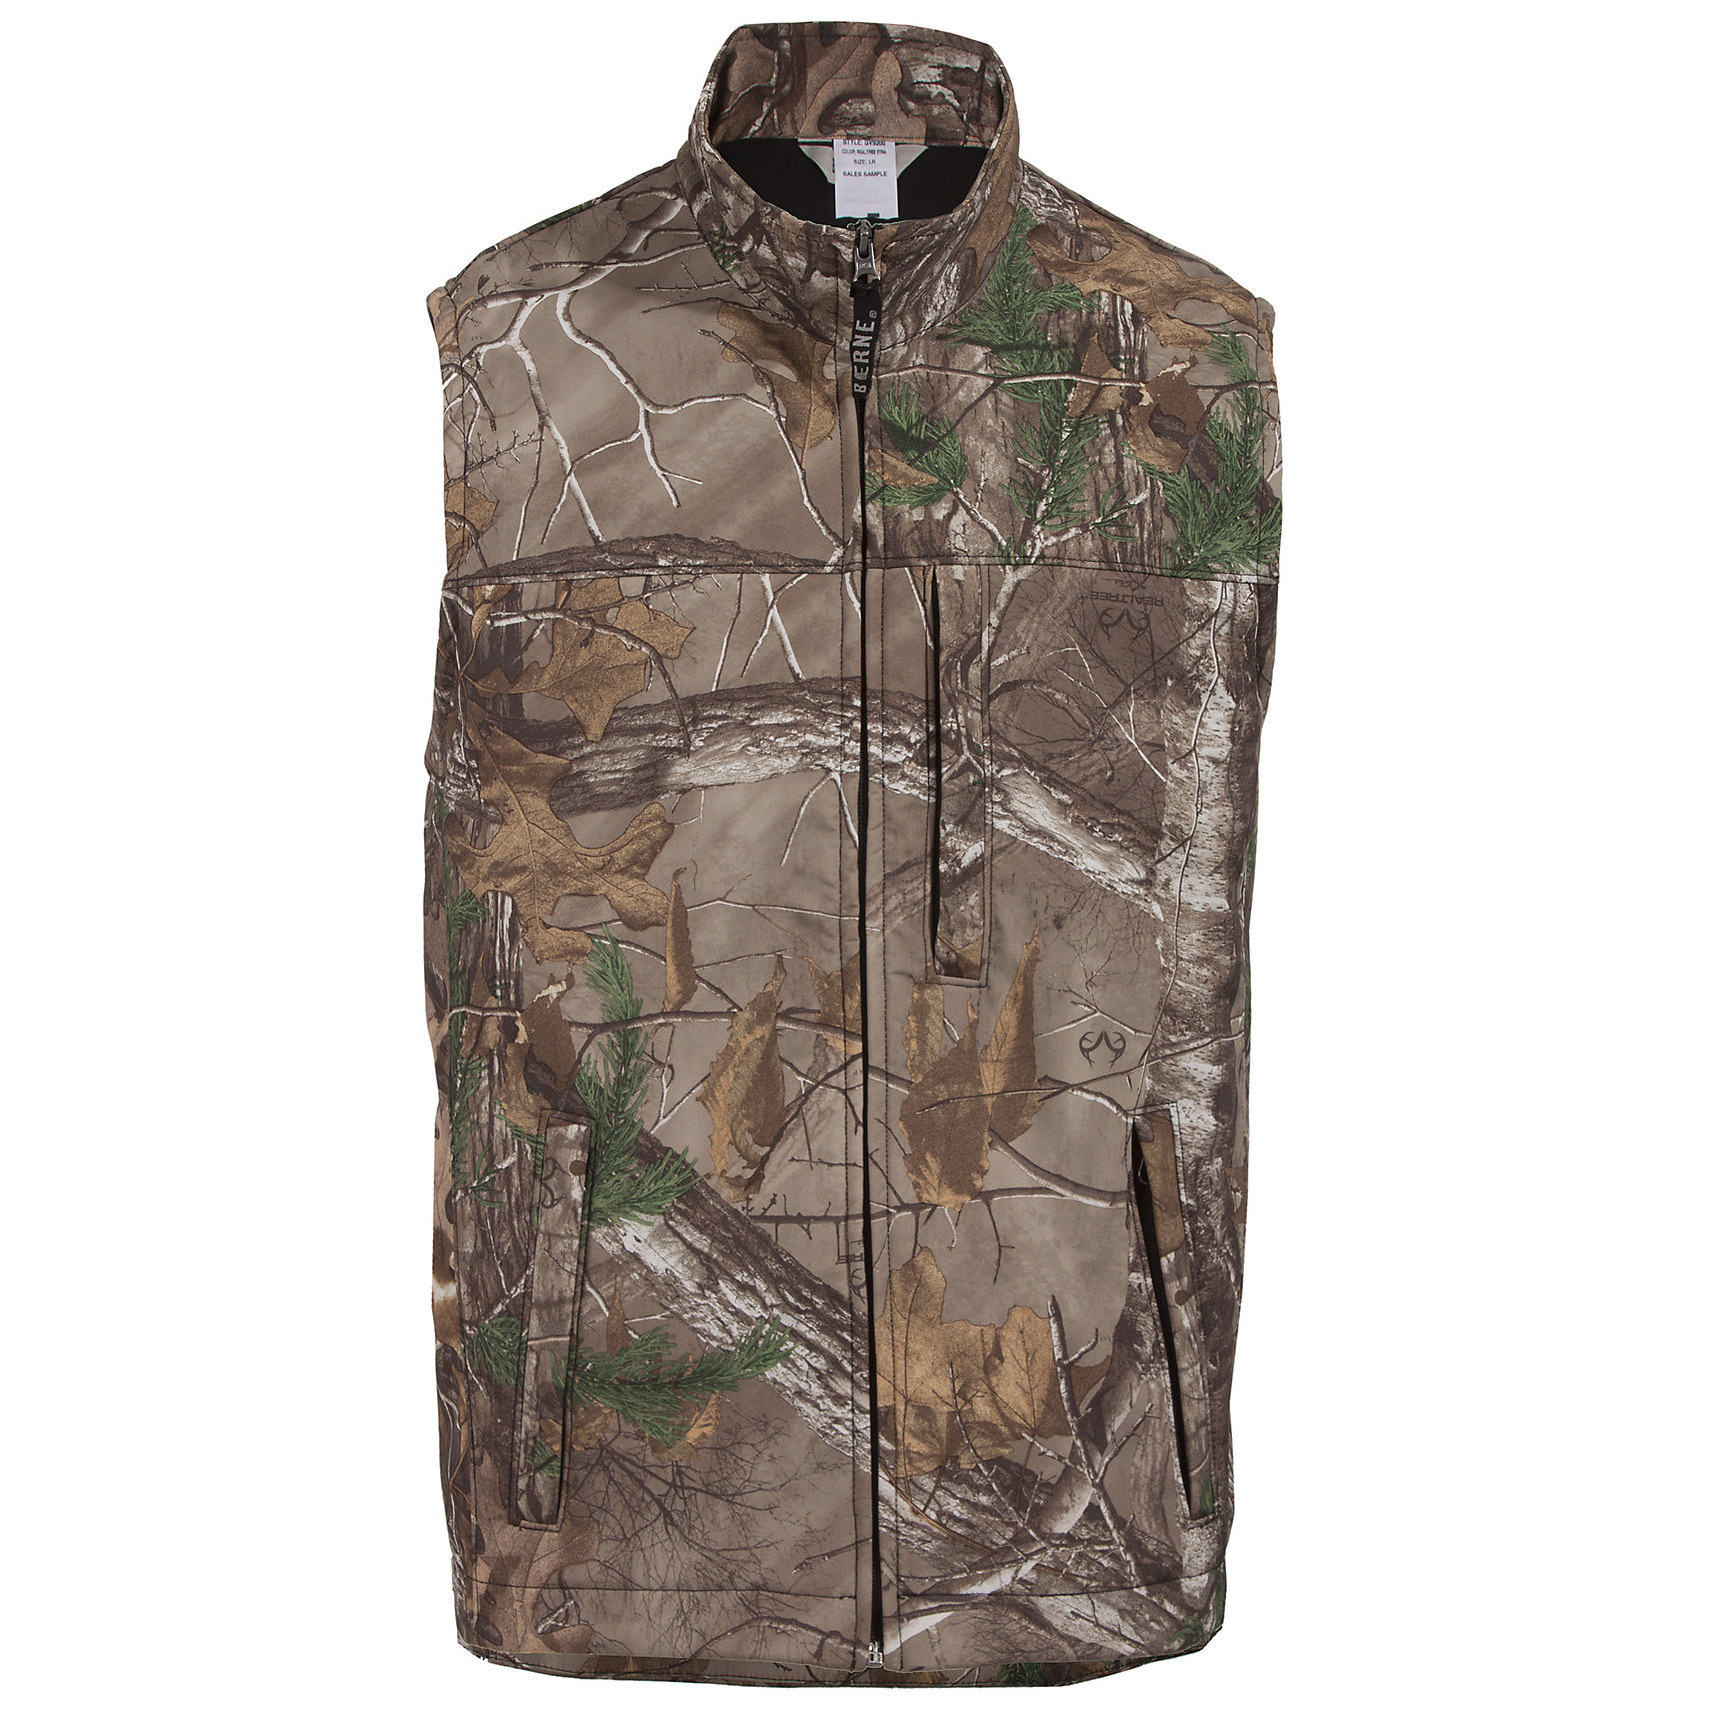 Berne Weekender Softshell Realtree Xtra Hunting Vest. Made for dry, warm comfort, and the stealth edge! Berne quality with loads of stretch, weather-resistant comfort, and effective Realtree camo concealment:Polyester / Spandex shell is tough, durable, stretchy and quiet Comfortable 100% microfleece lining Wind-resistant, water-resistant, and breathable Full zip front with zip-through collar Elastic waist cord with toggles Extended tail for added coverage in the back Zipper hand pockets and zipper chest pocket. Imported. State Size, as available in the Shopping Cart. - $54.99